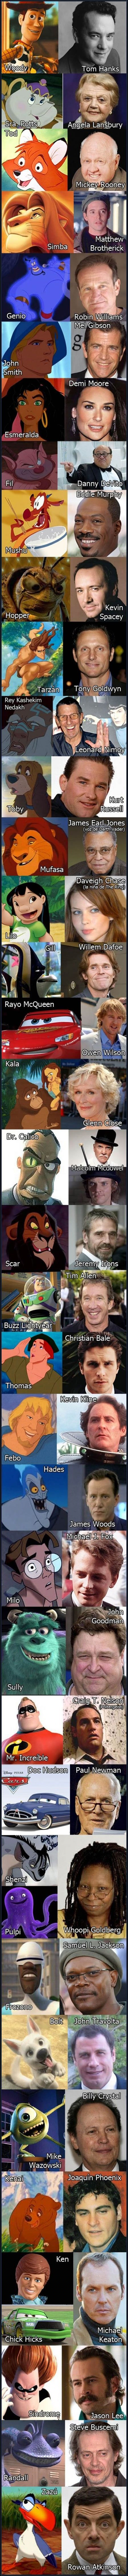 Disney Voices match Disney Characters Movies